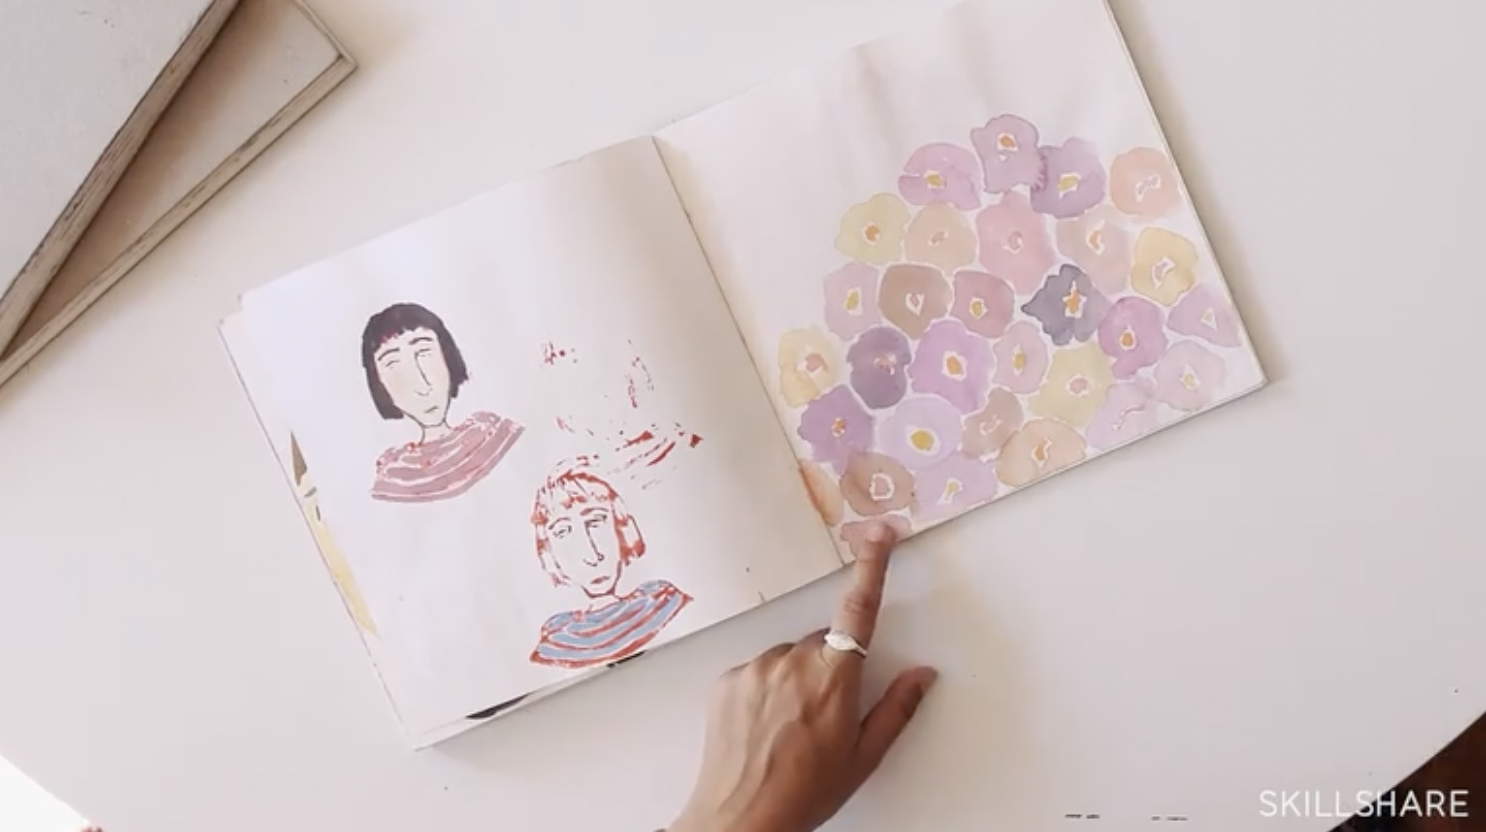 Illustrator Leah Goren's sketchbook, filled with inspiration from everyday things.